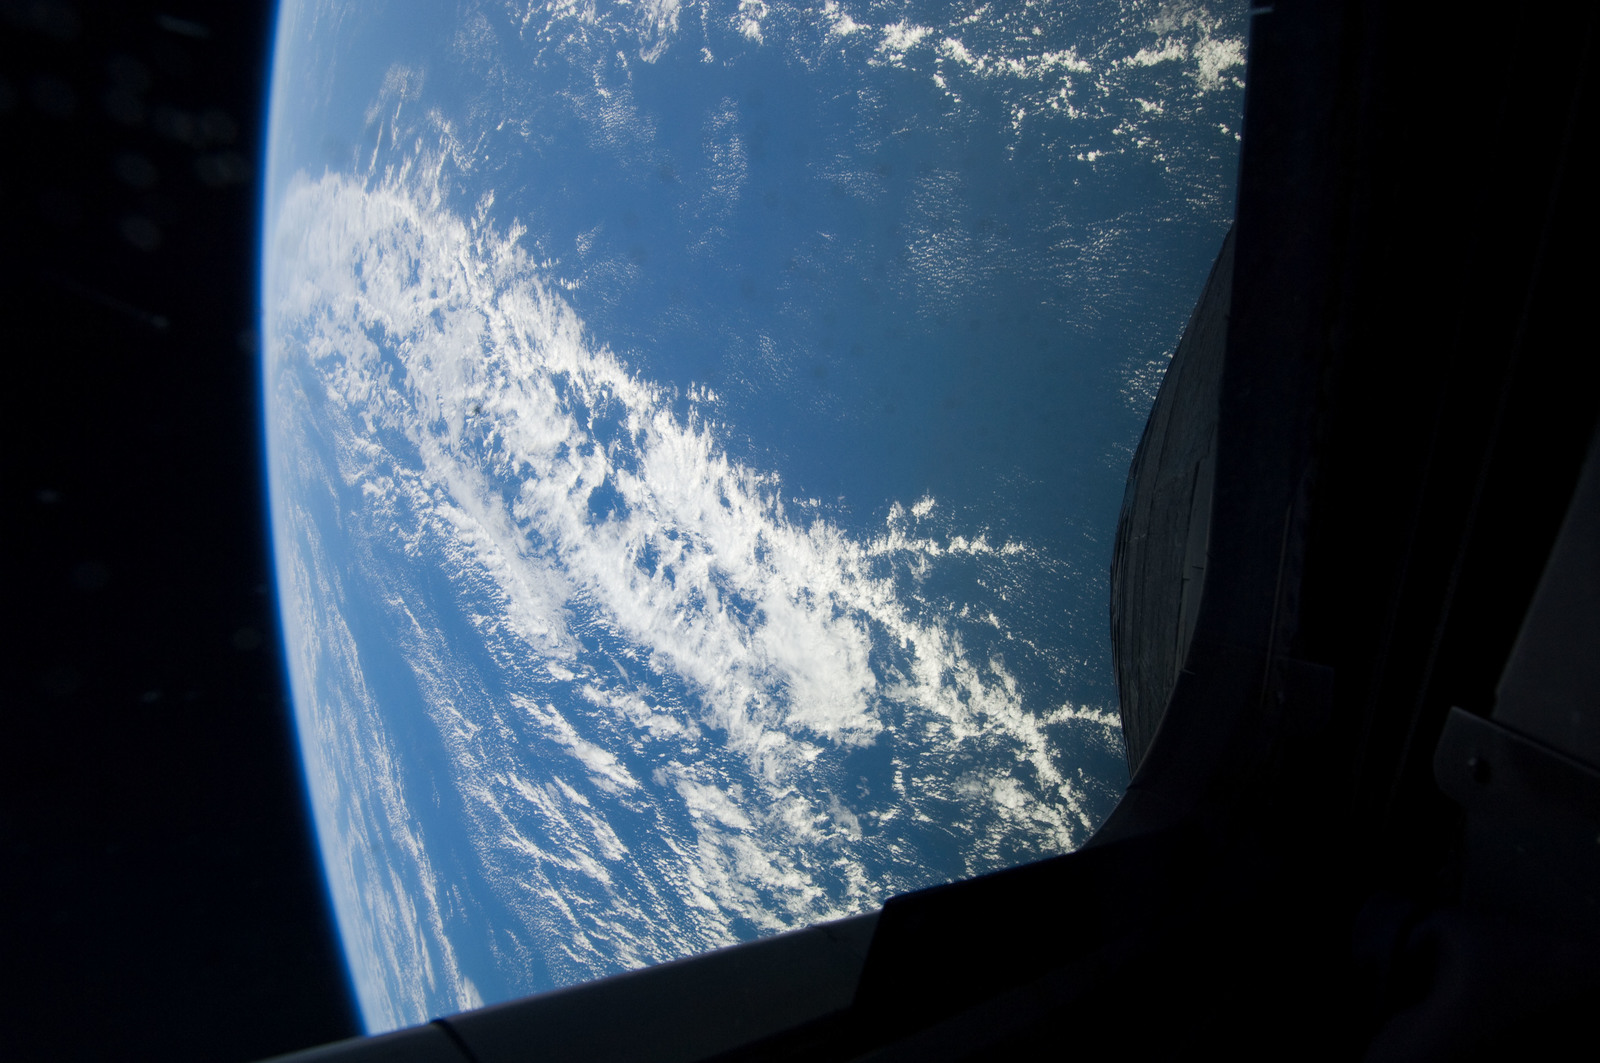 s133E006943 - STS-133 - Earth Observation taken by the STS-133 crew